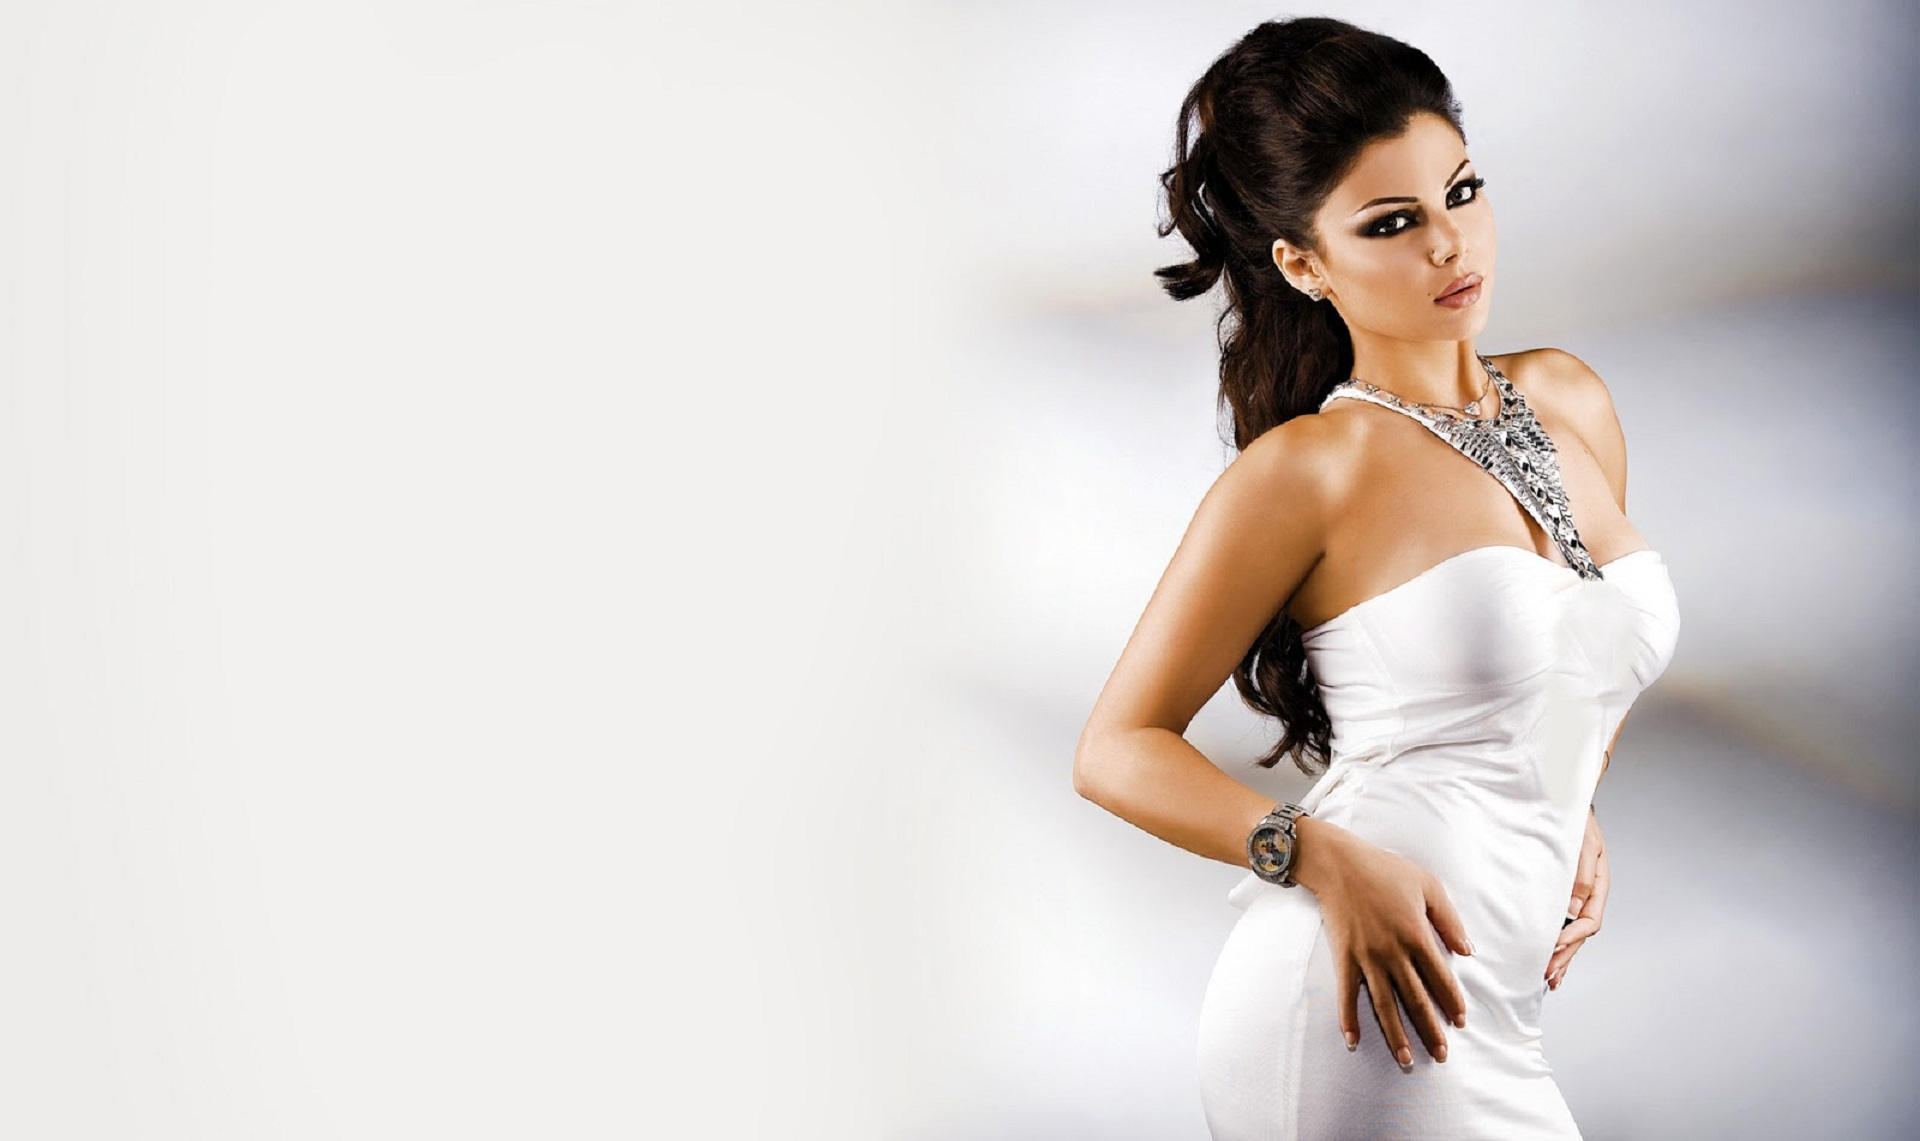 Pictures Of Haifa Wehbe